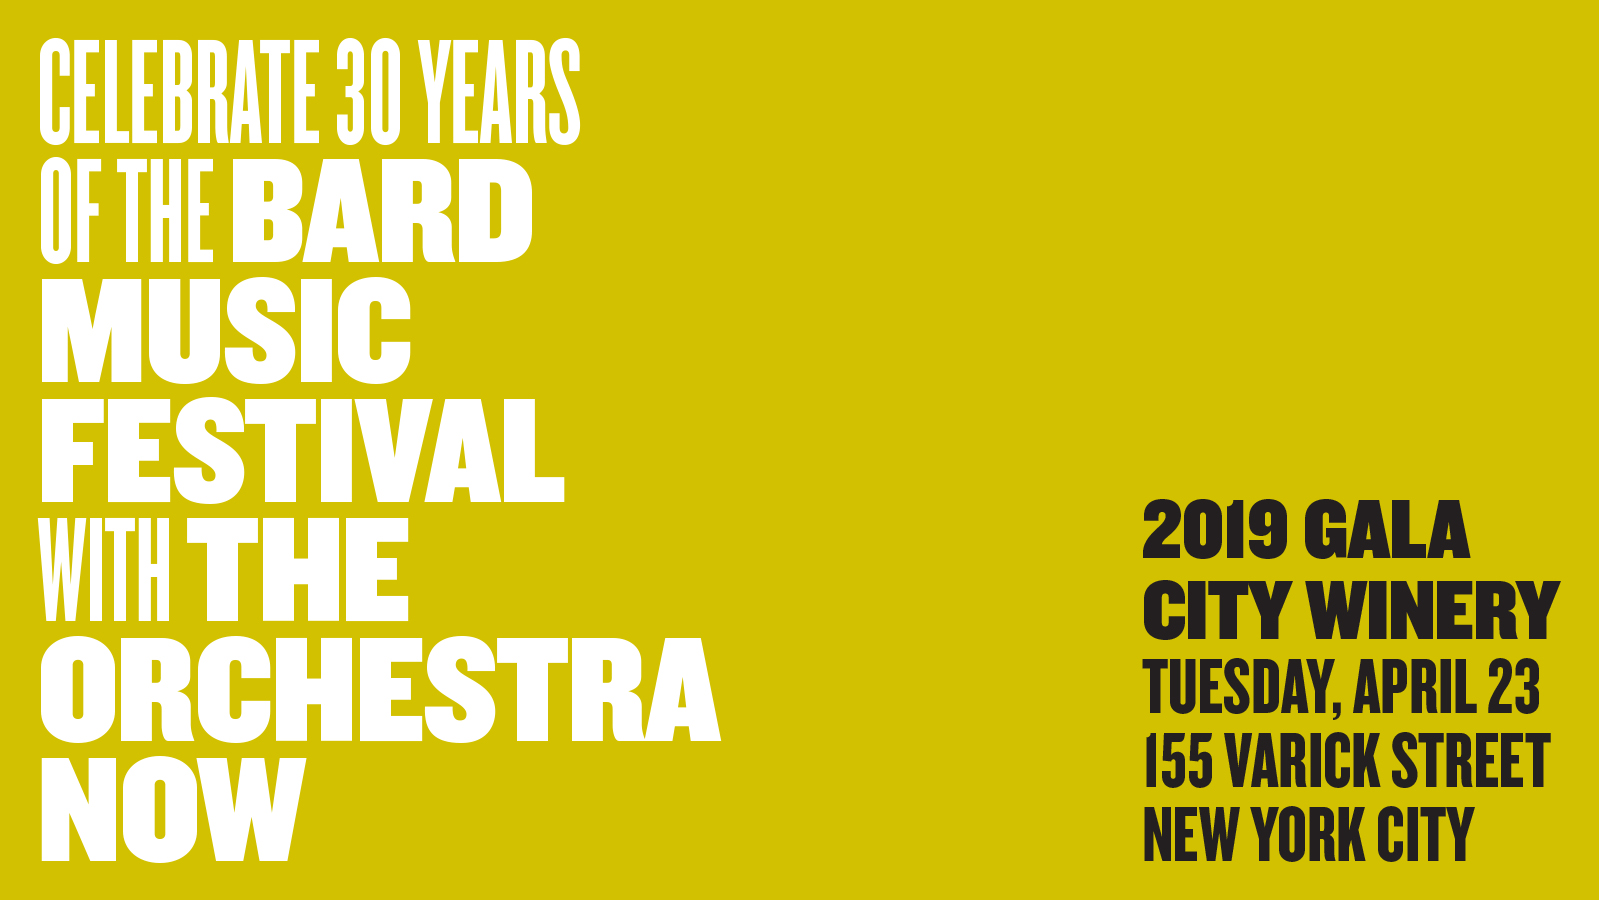 [The Bard Music Festival and The Orchestra Now Join Forces to Celebrate 30 Years of Musical Exploration]